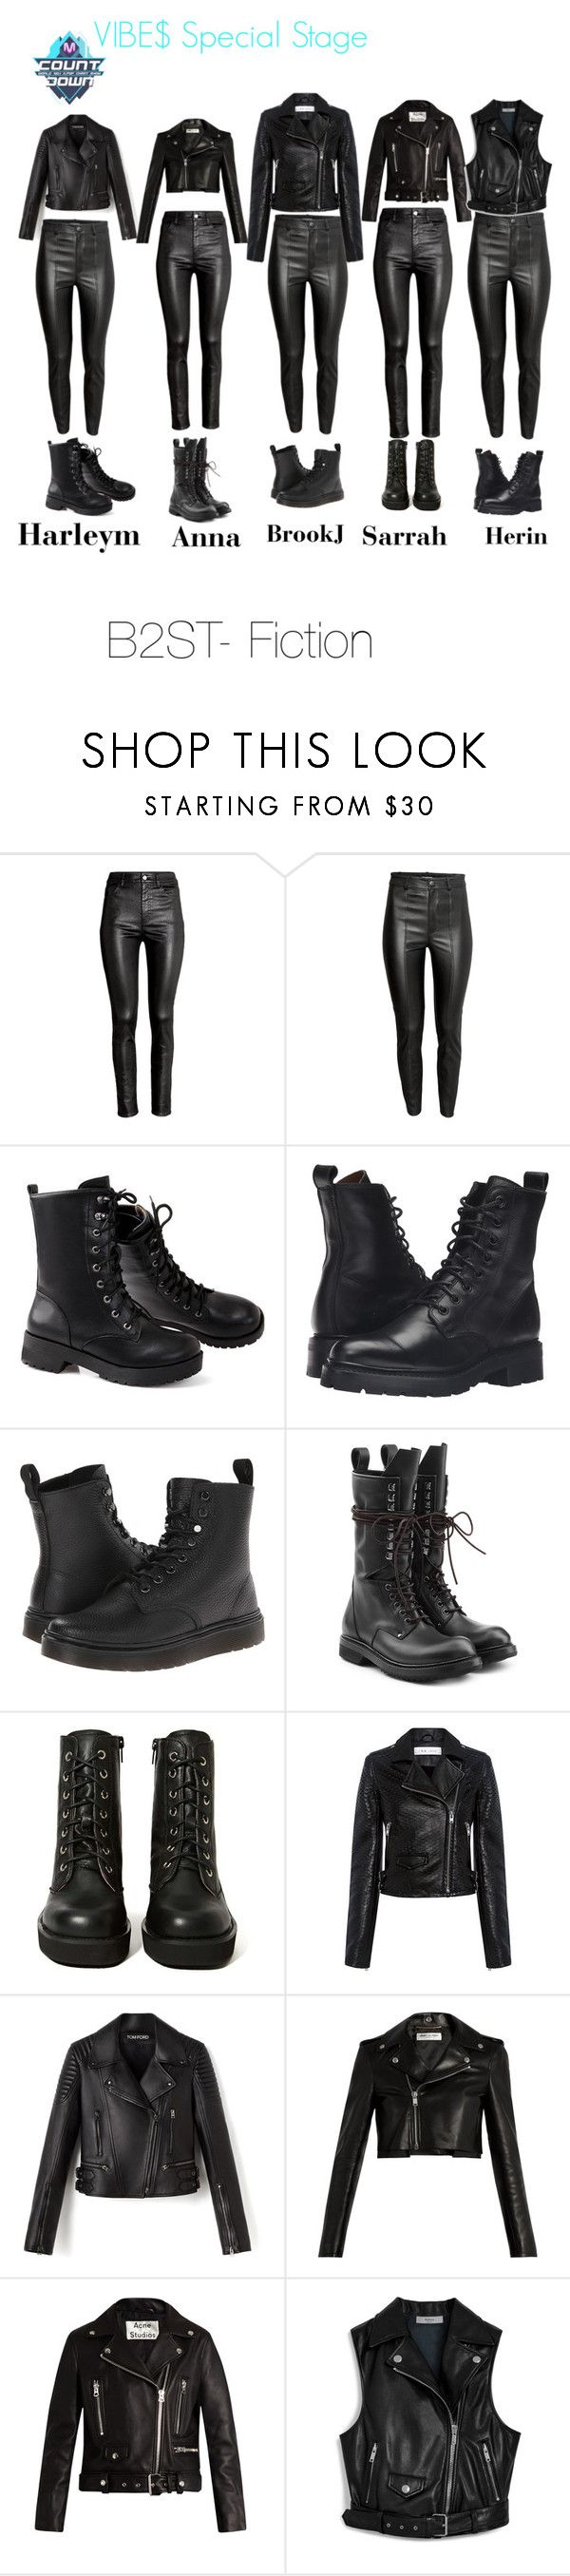 """2011 VIBE$ Mcountdown Special Stage"" by ygentertaiment on Polyvore featuring mode, H&M, Frye, Dr. Martens, Rick Owens, Jeffrey Campbell, IRO, Yves Saint Laurent, Acne Studios et Mulberry"